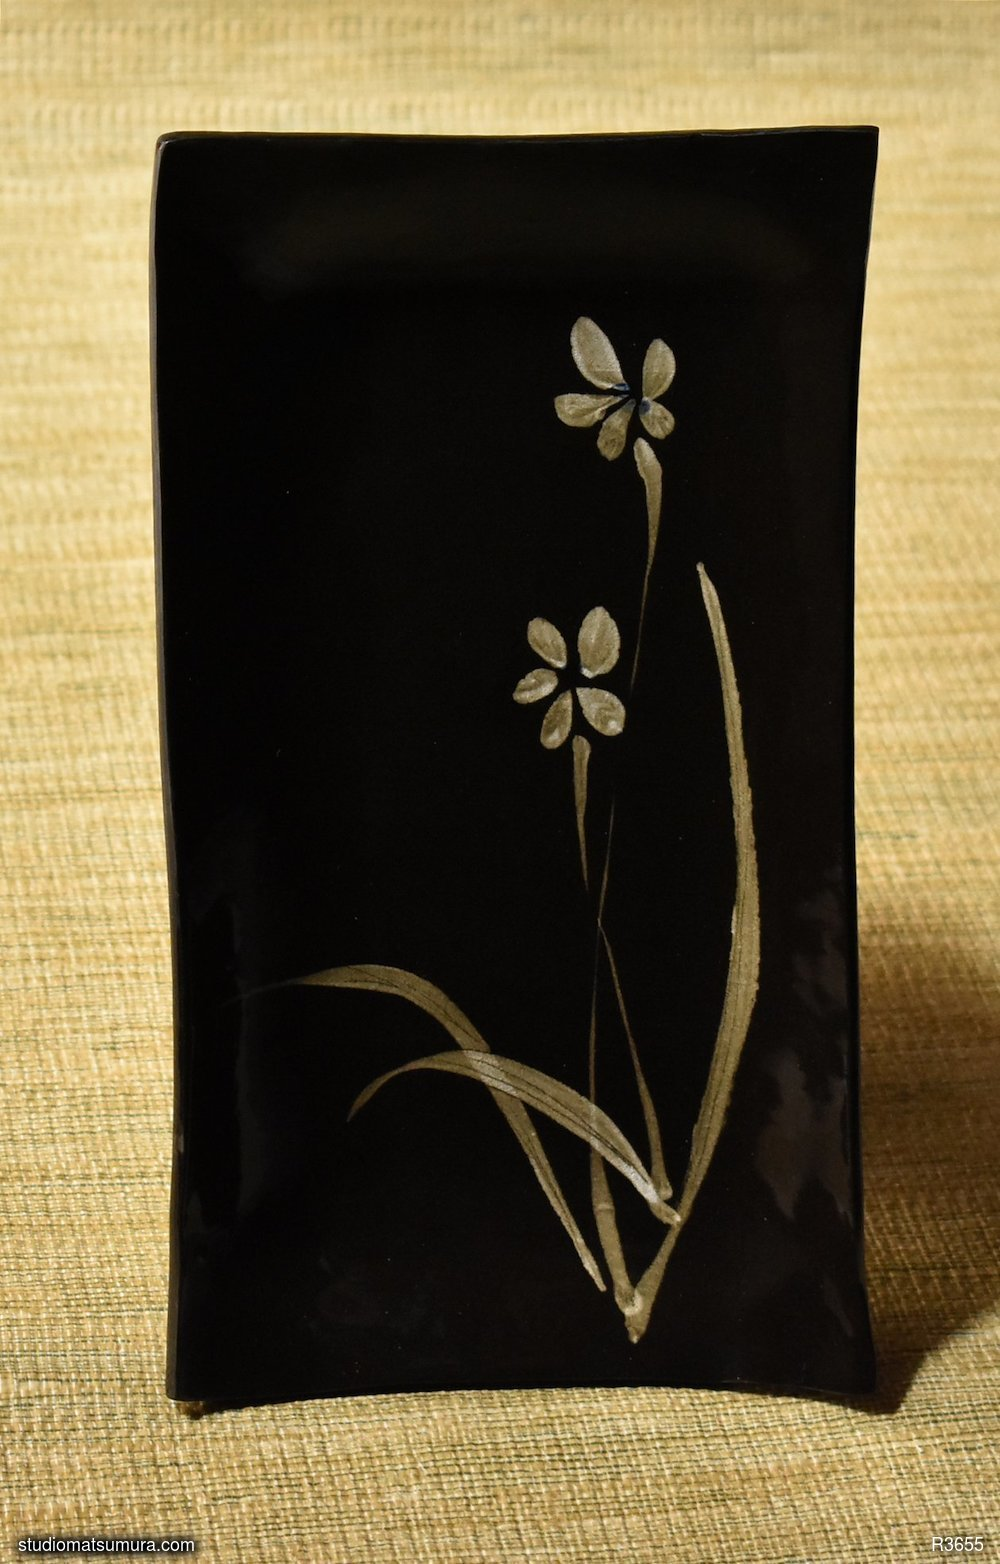 Handmade dinnerware with Sumi-e drawings of a Wild Orchid, on black stoneware